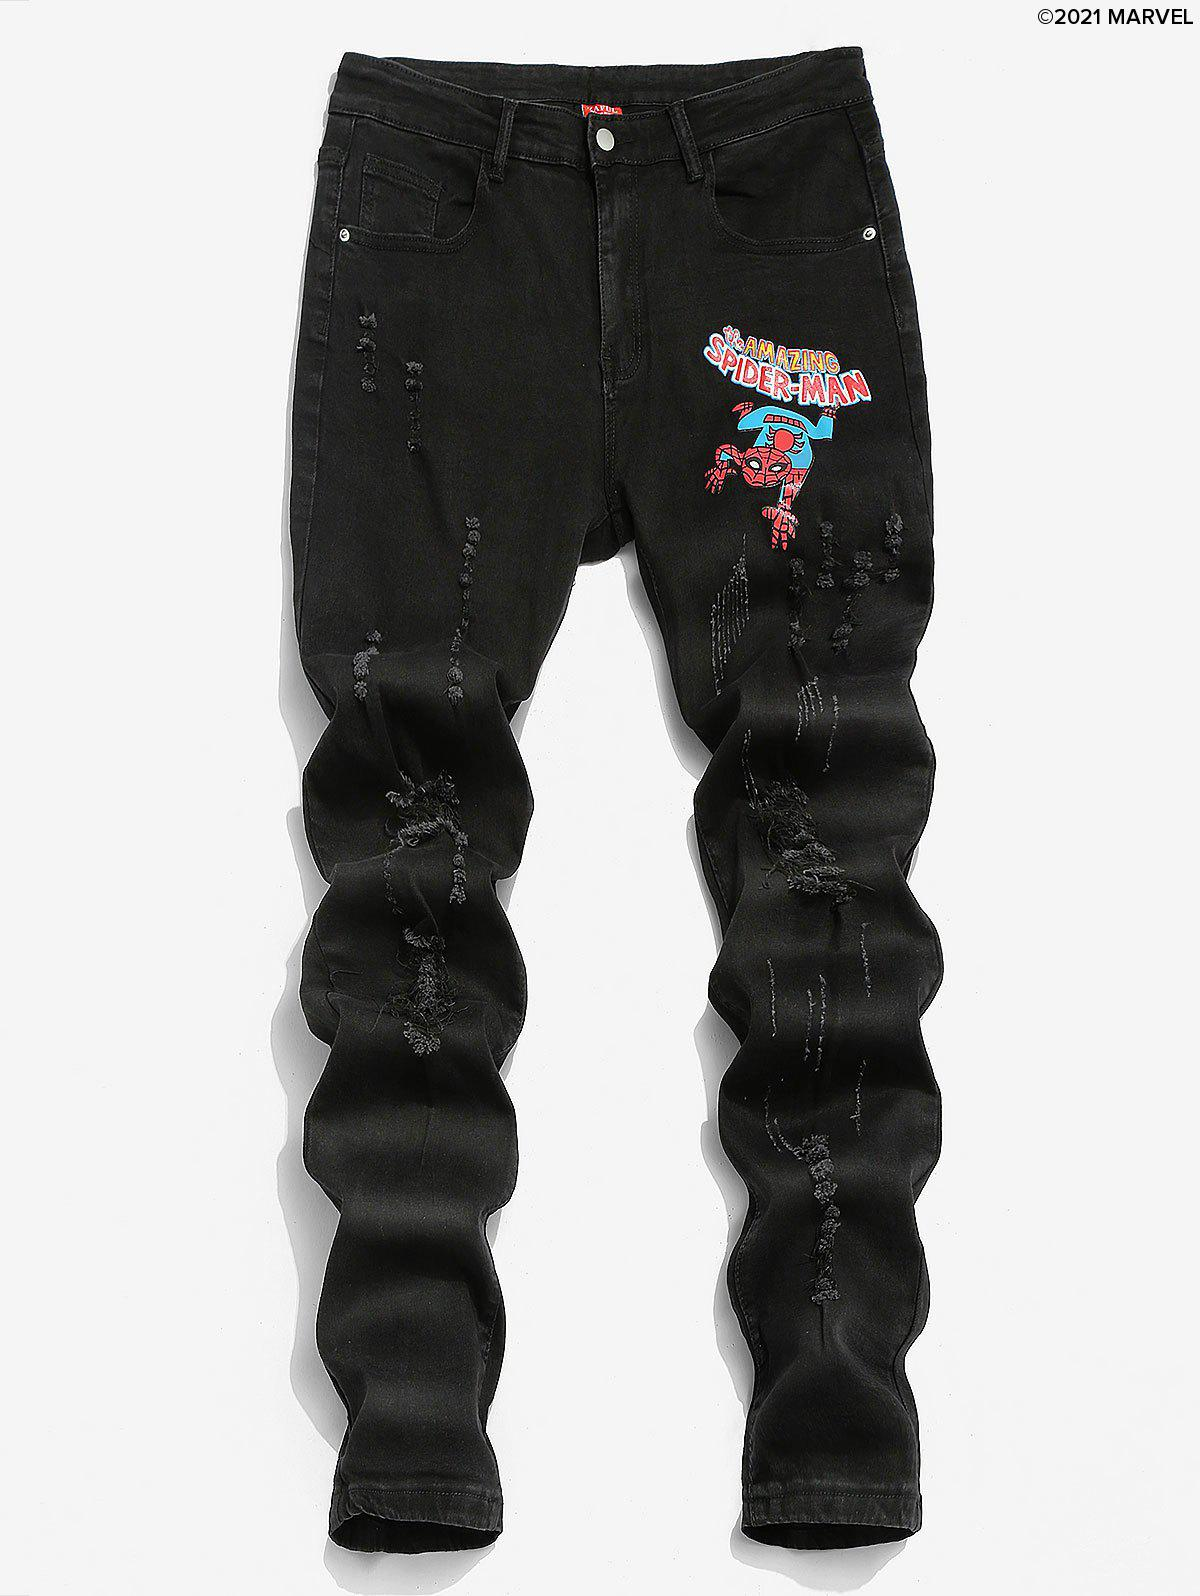 Shop Marvel Spider-Man Graphic Print Ripped Tapered Jeans